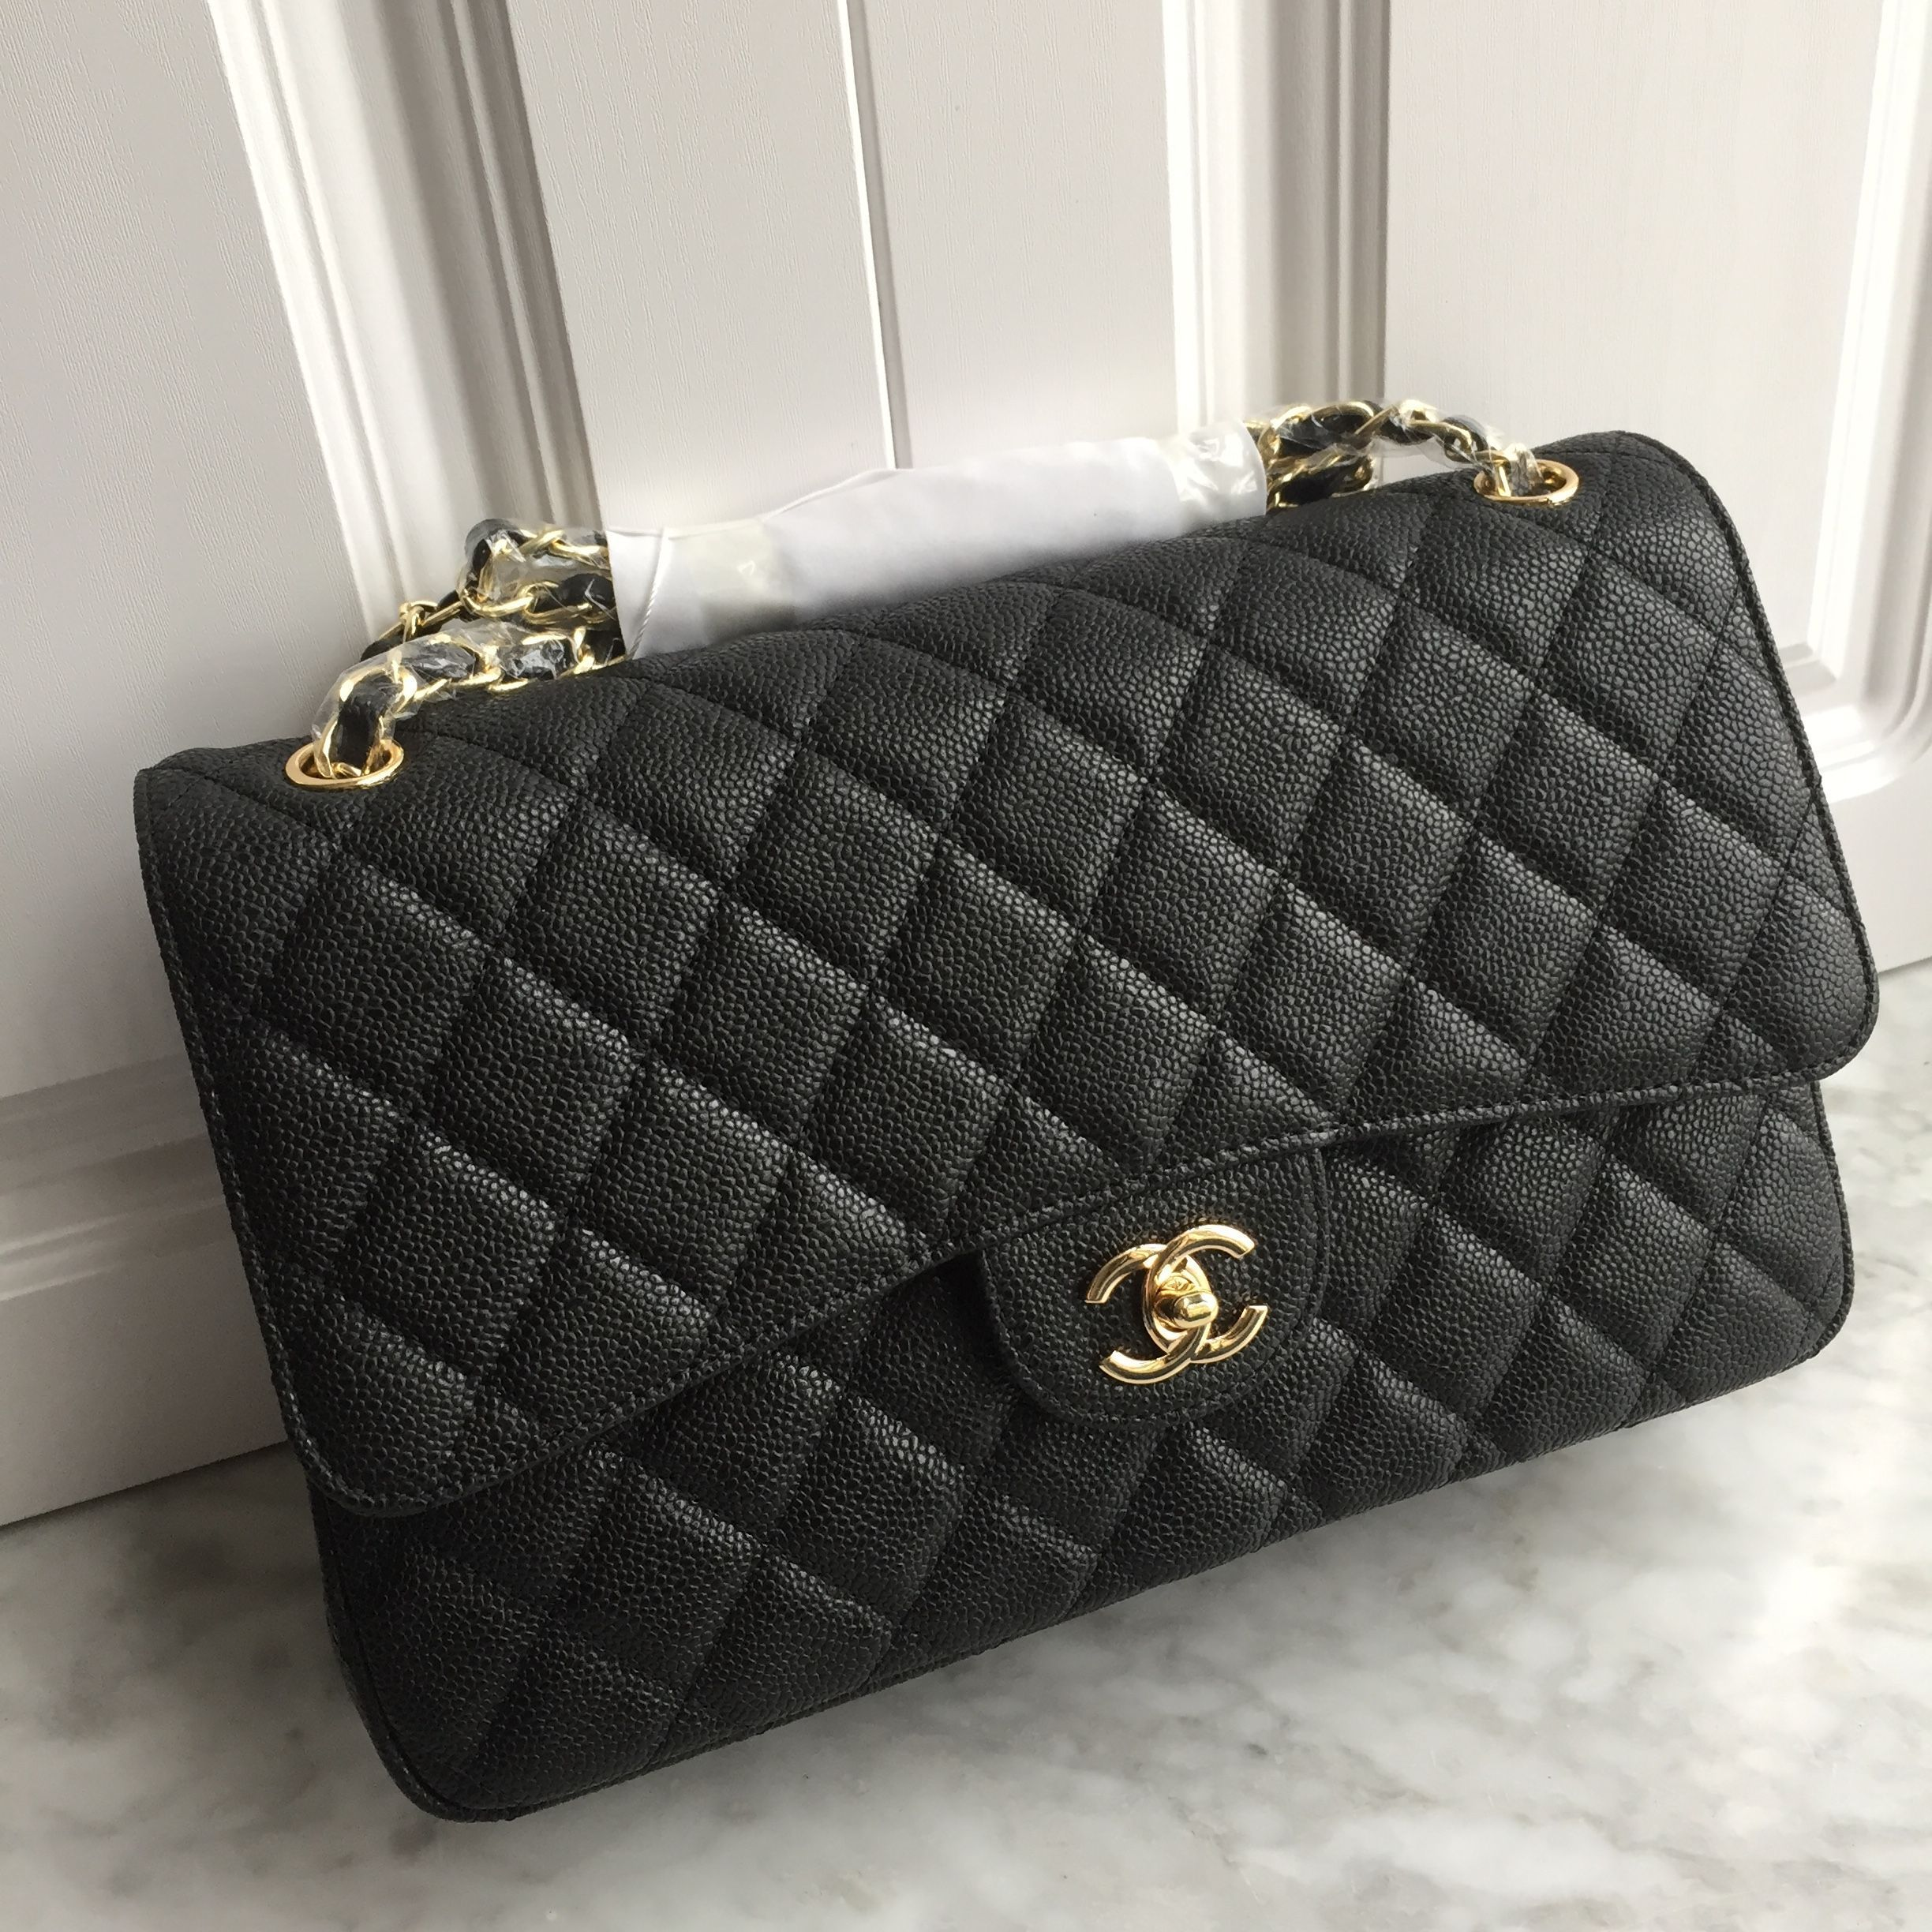 9fb248951ecdf Chanel 2.55 classic flap bag jumbo size caviar black gold